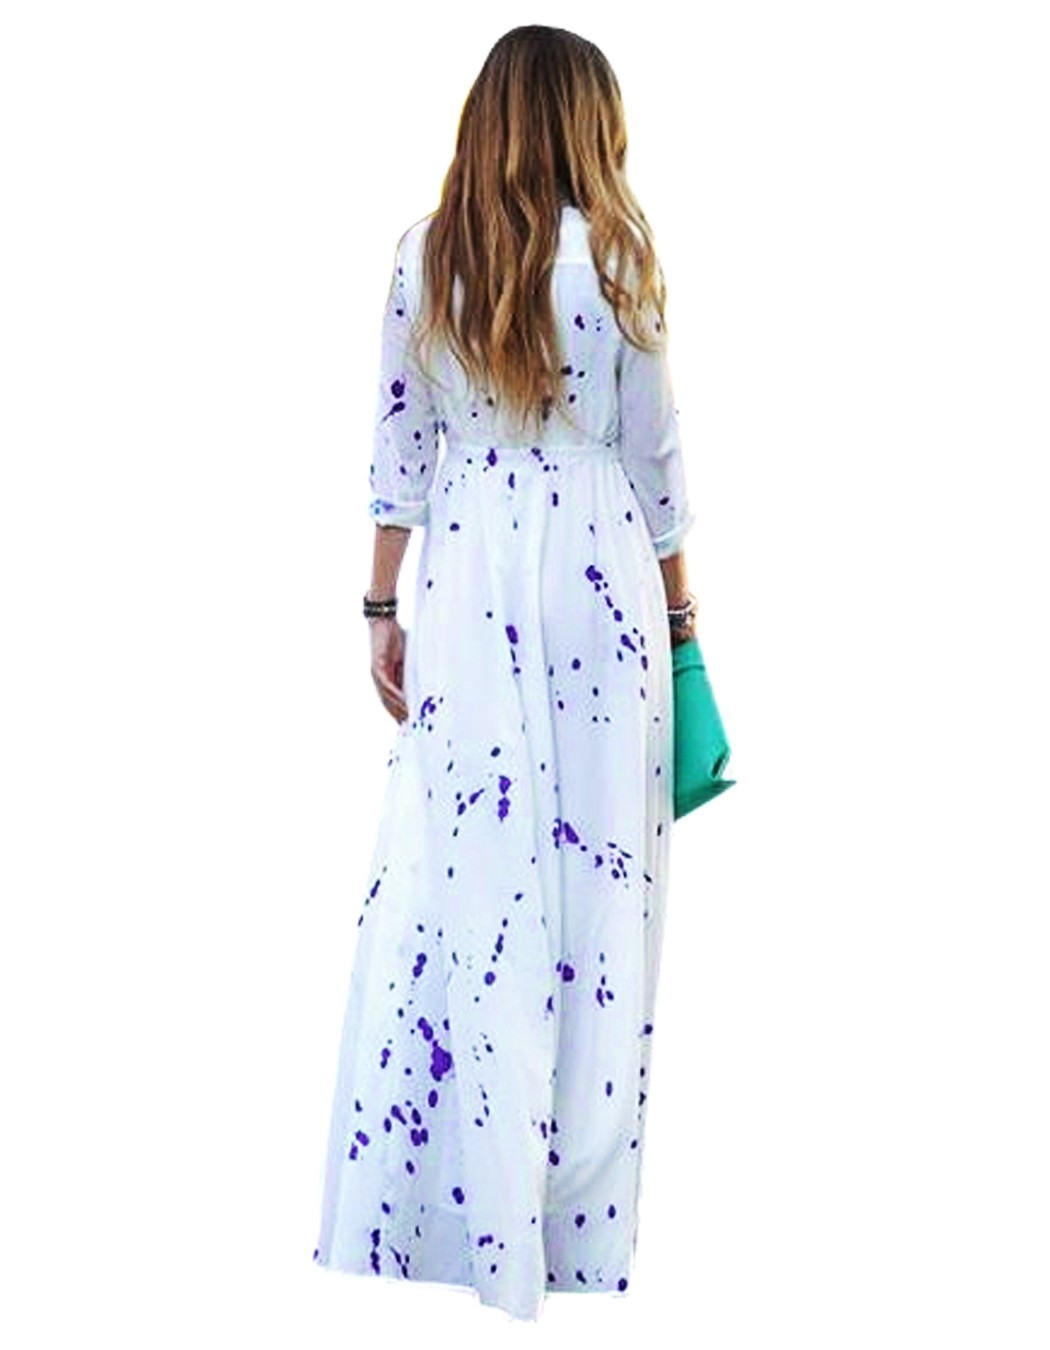 Fashion Gift Lapel Long Sleeve High Waist Chiffon Maxi Shirt Dress Beach Wear White Color LOVIW